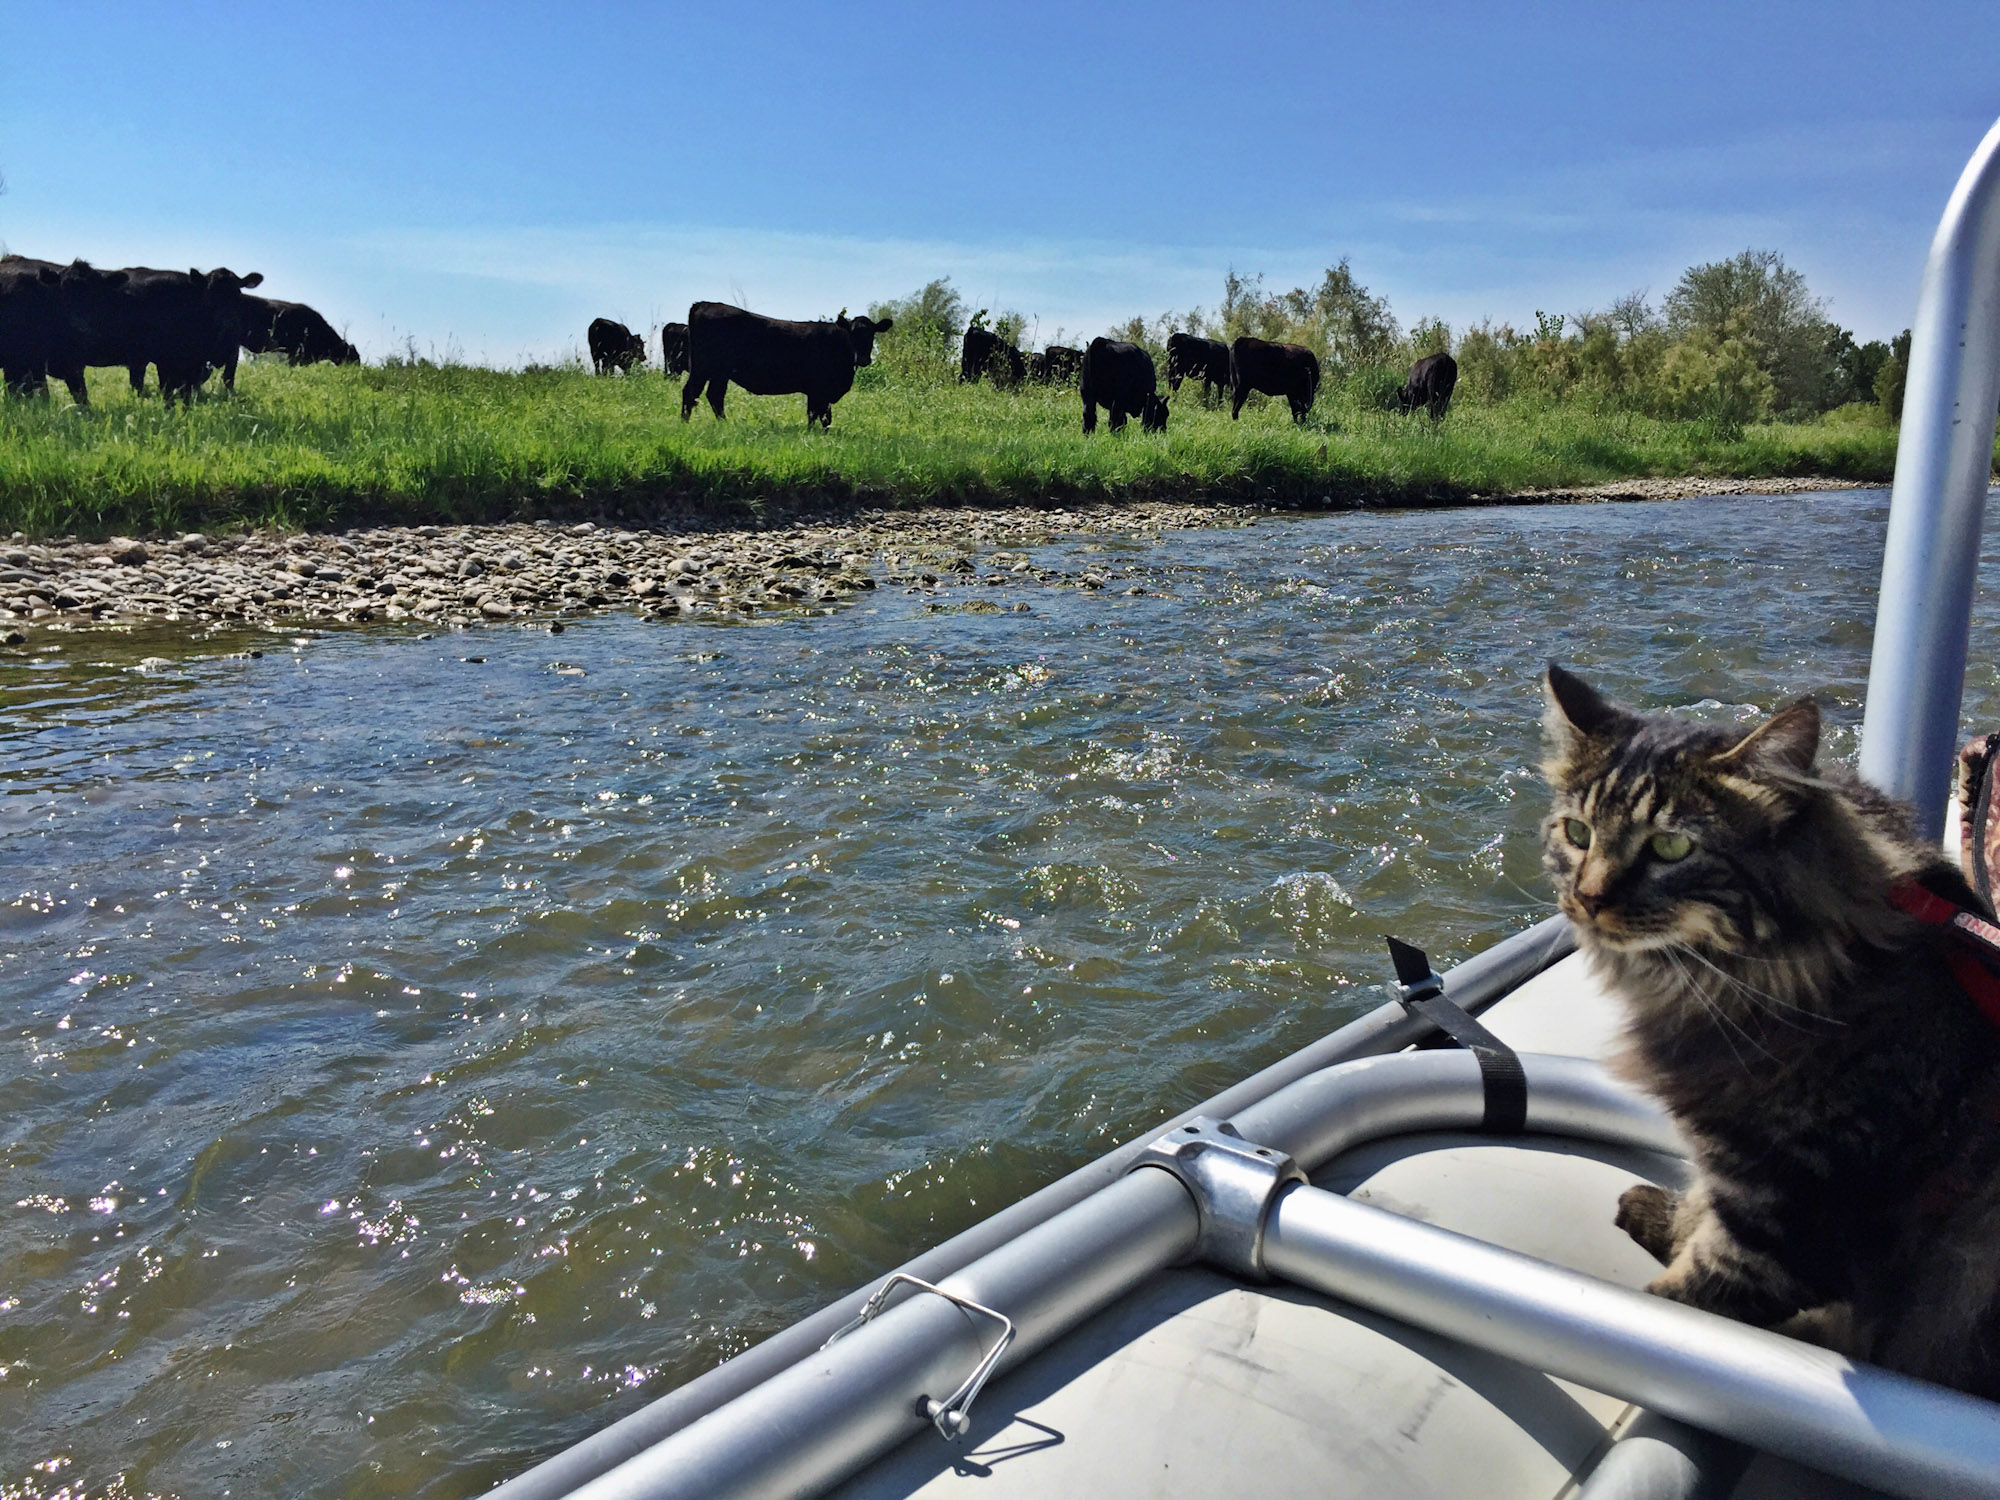 Otie the cat riding in boat